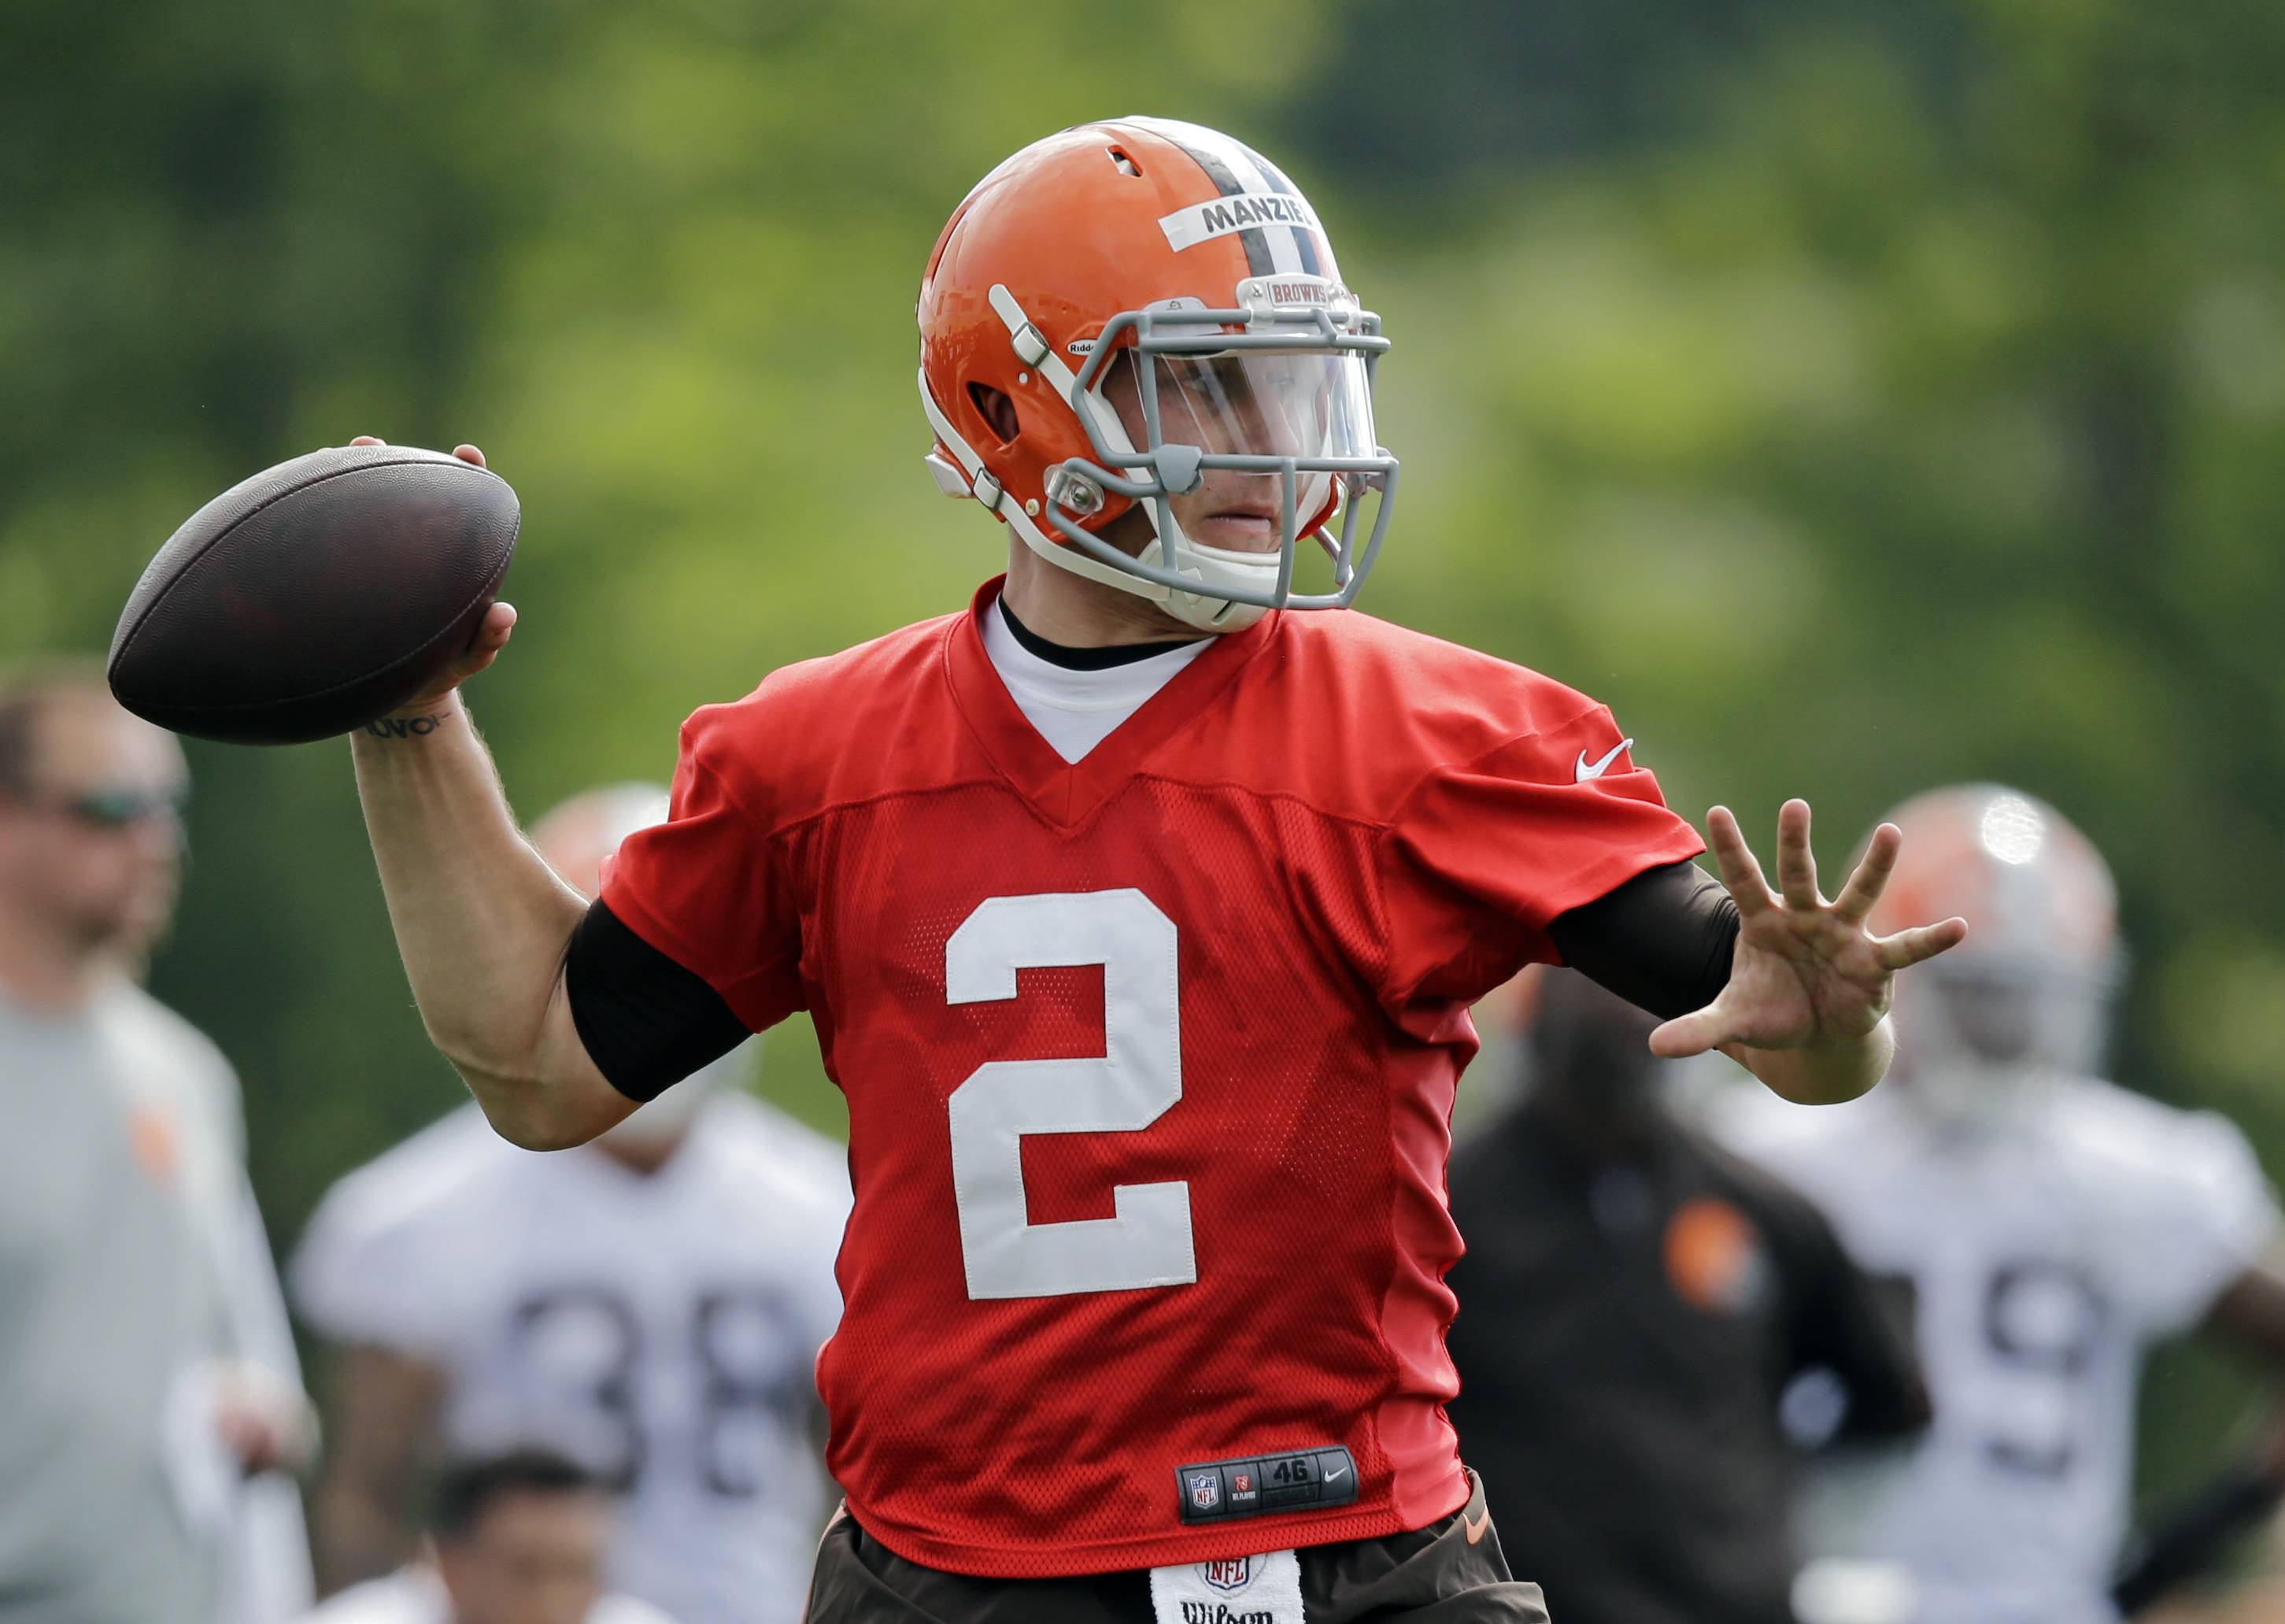 Cleveland Browns quarterback Johnny Manziel (2) passes during the first practice at the NFL football team's training camp in Berea, Ohio Saturday, July 26, 2014.